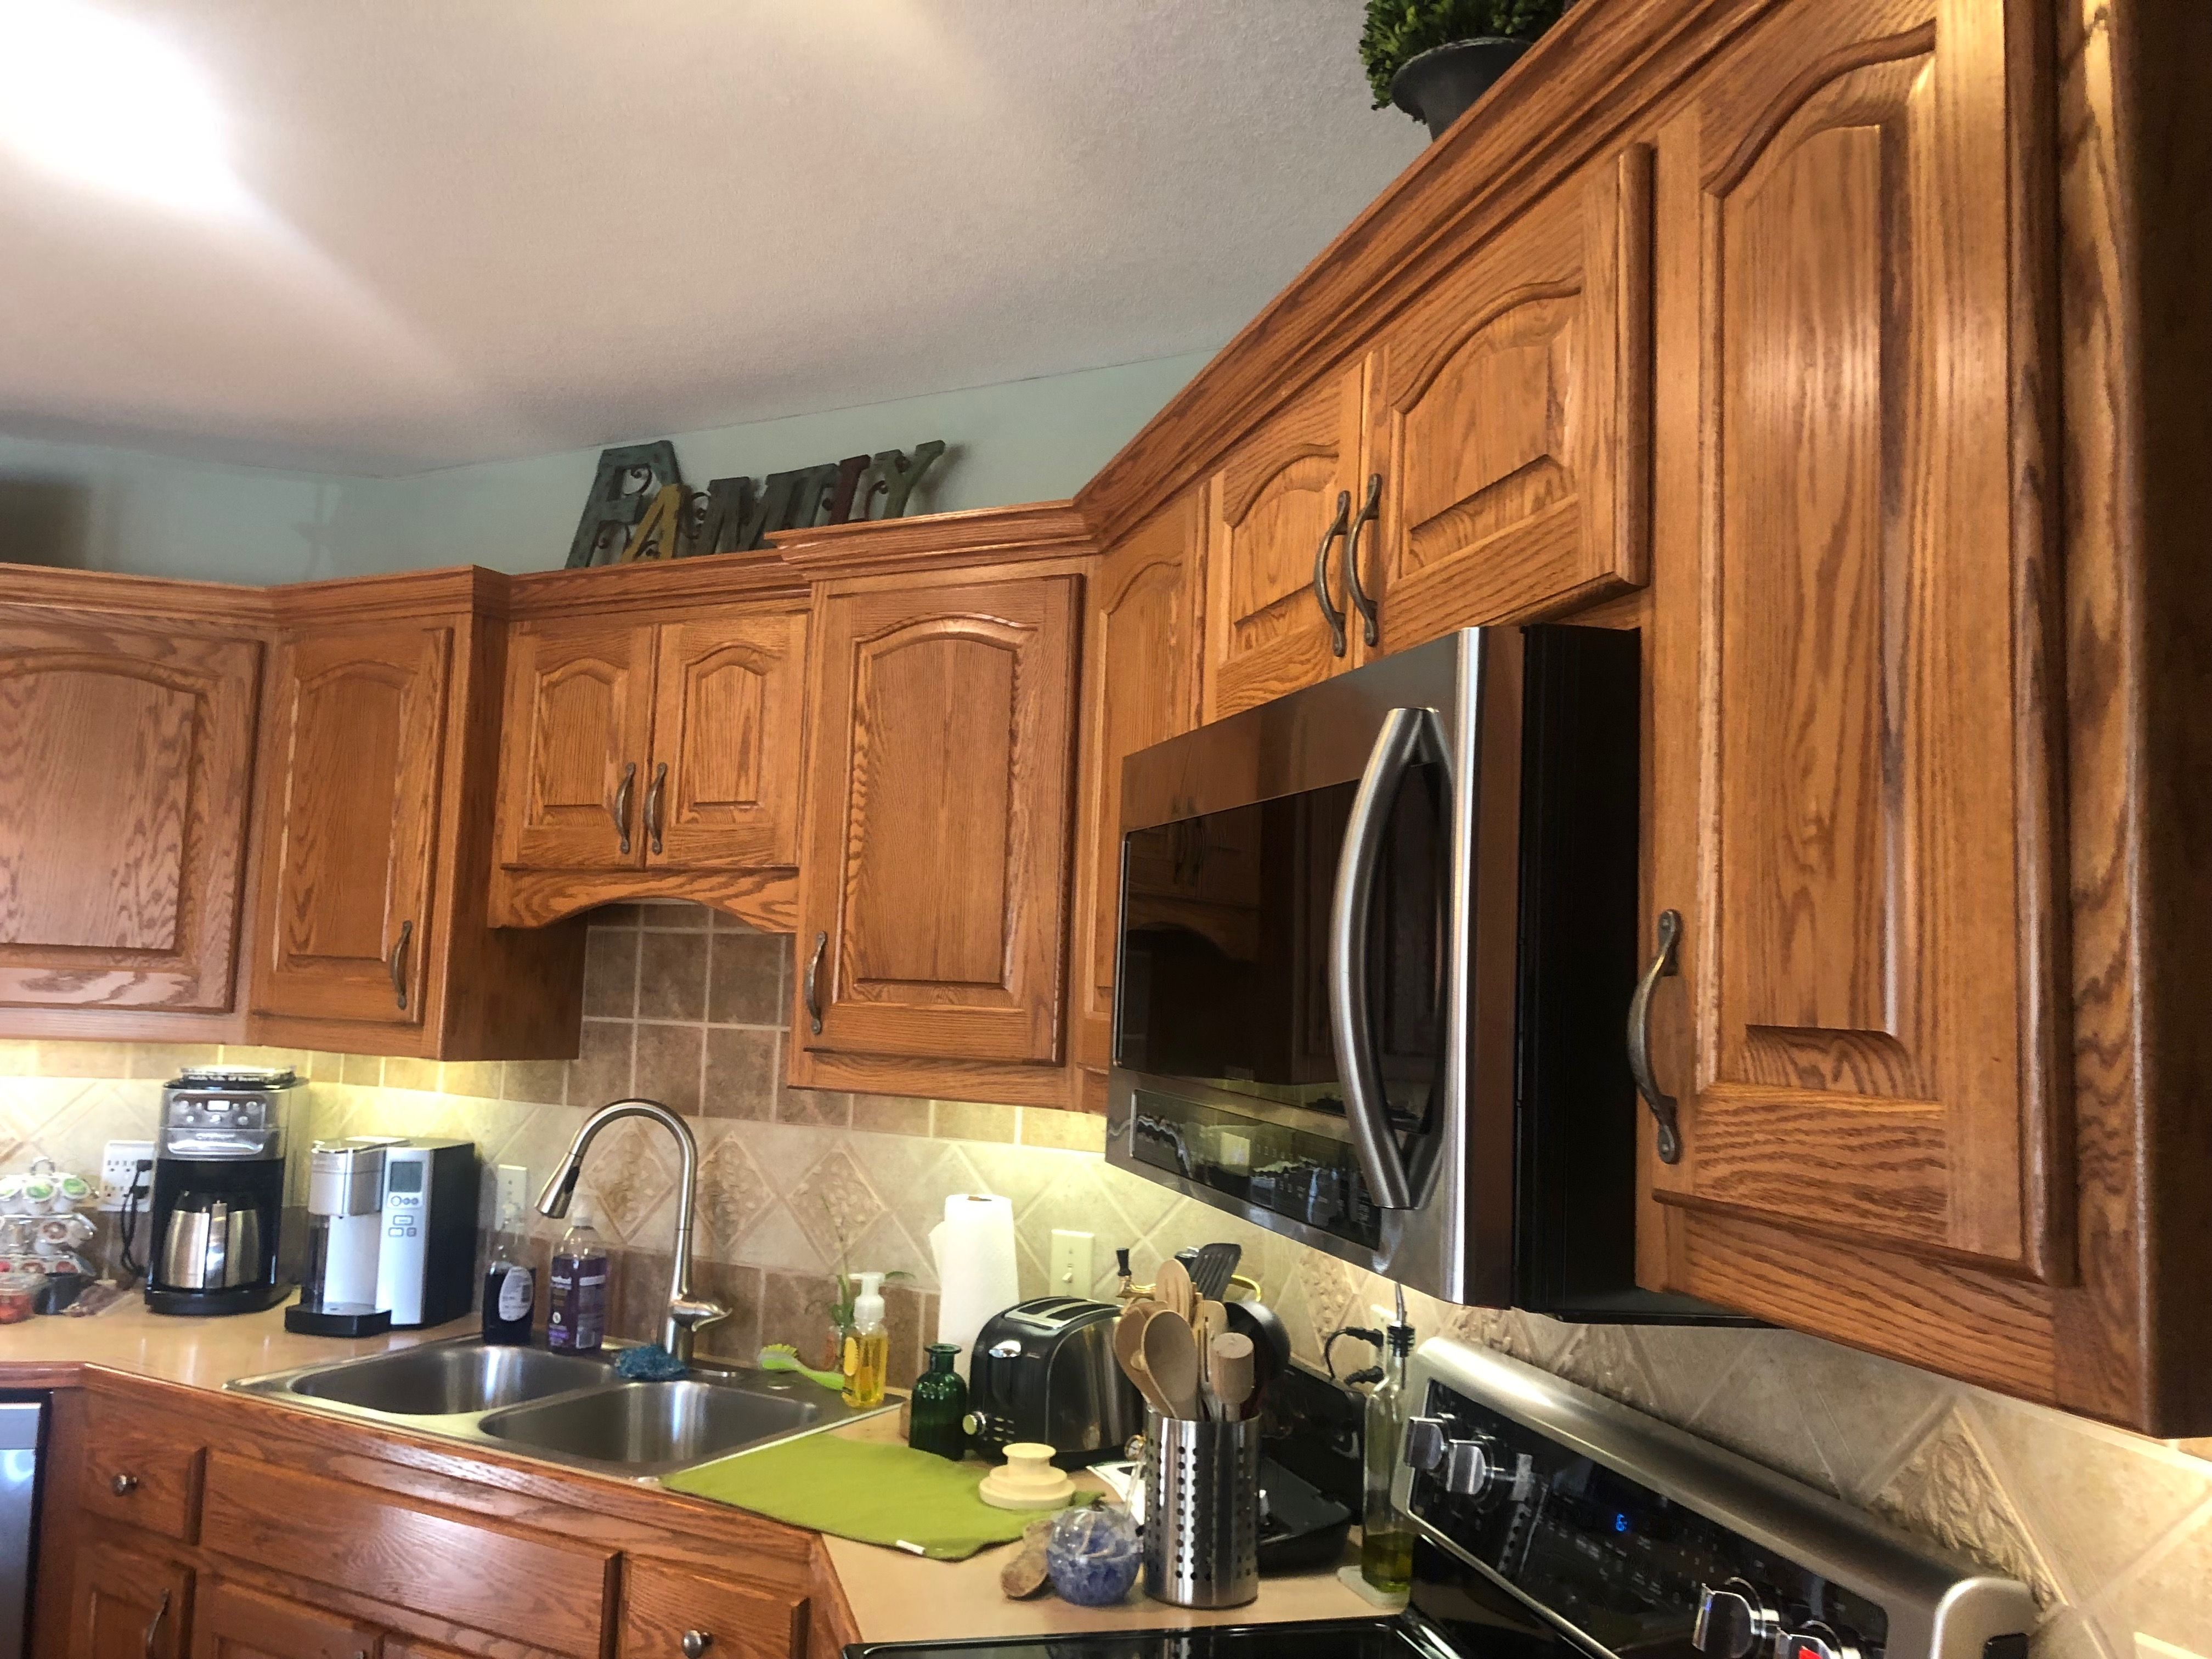 Pin By Janet Logsdon On New Home Ideas New Homes Kitchen Cabinets Home